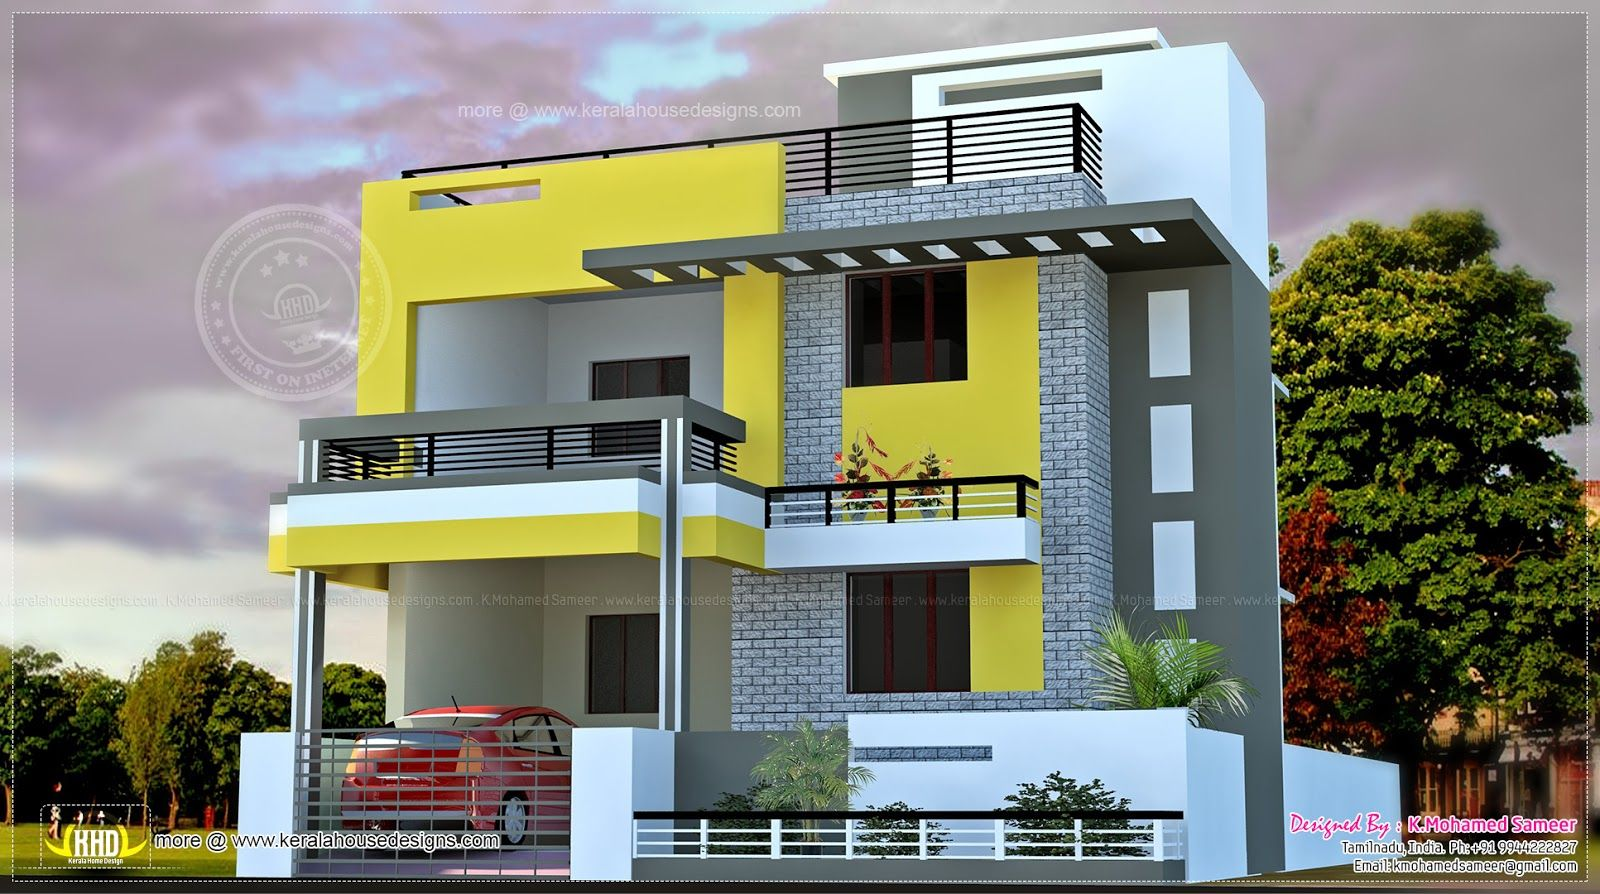 Elevations of residential buildings in indian photo for What is the cost of building a house in india